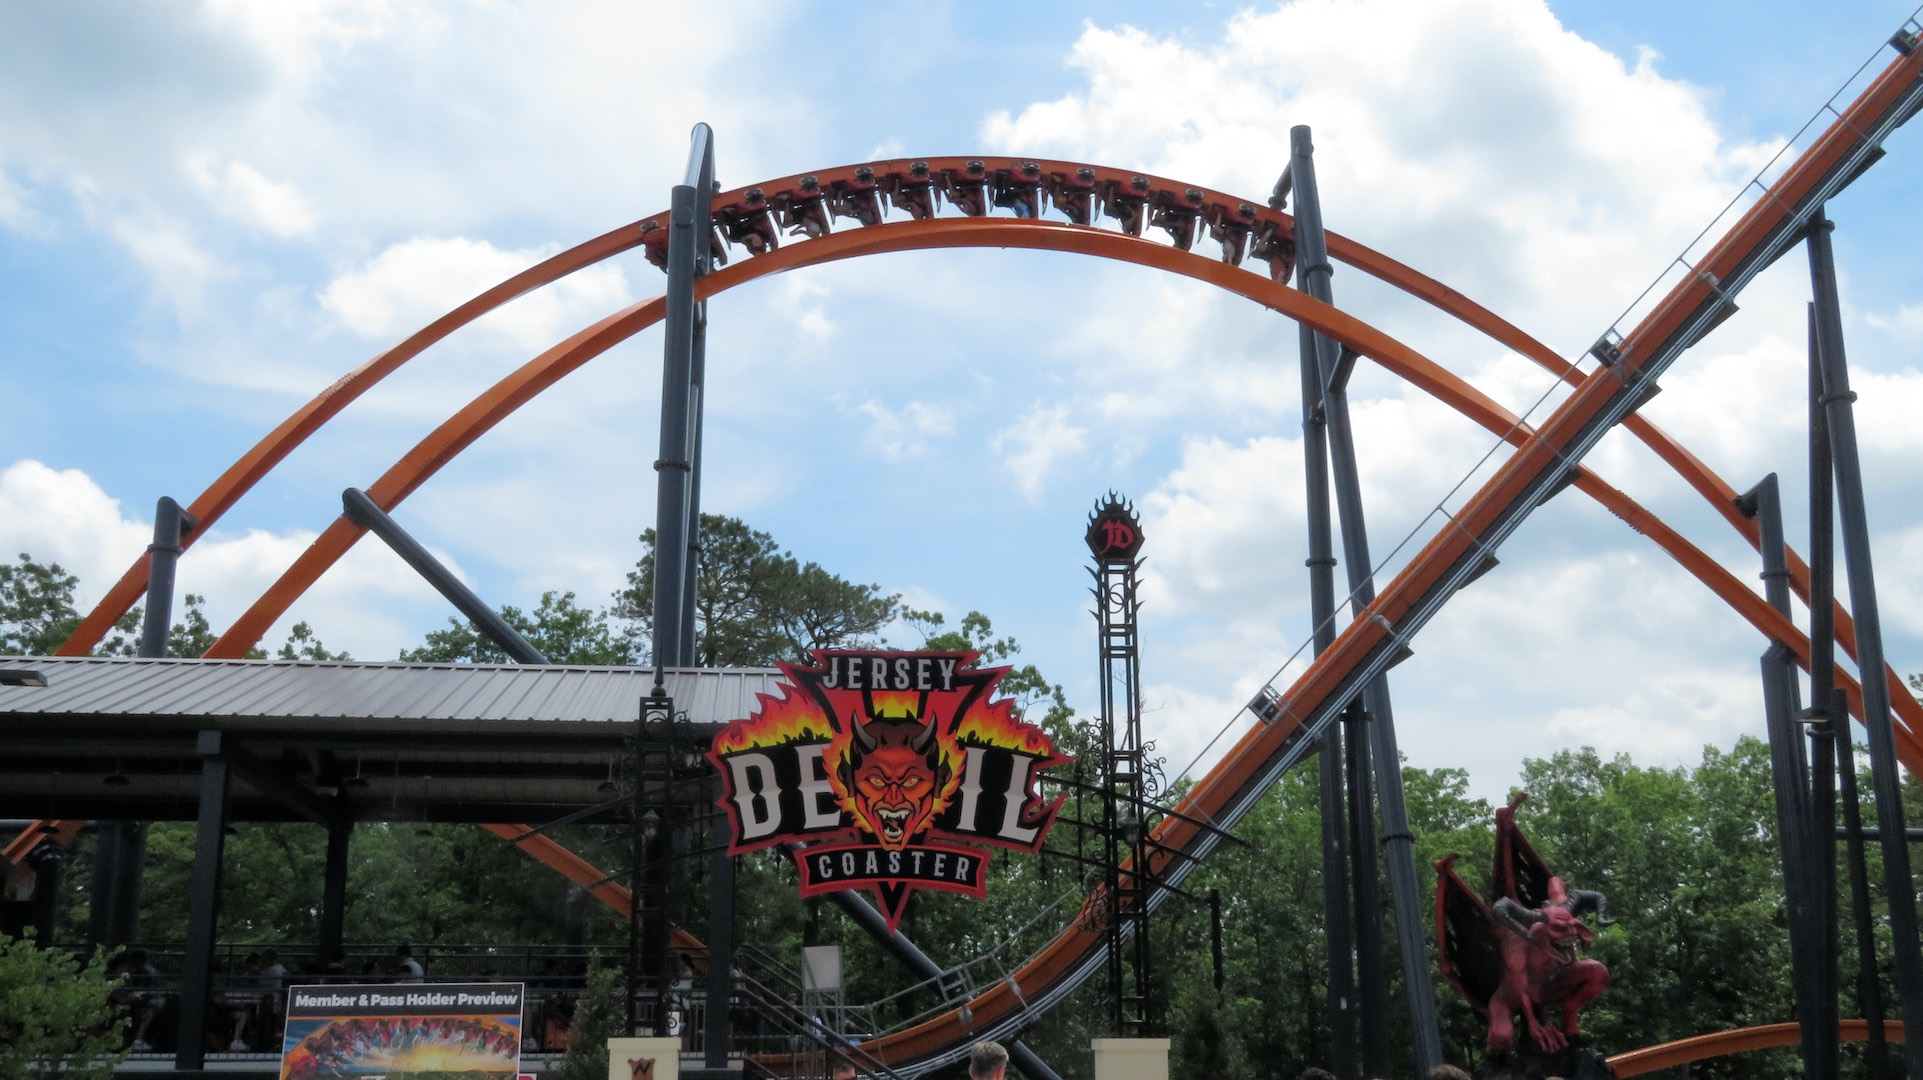 Great Adventure Opens Jersey Devil Coaster American Coaster Enthusiasts Ace